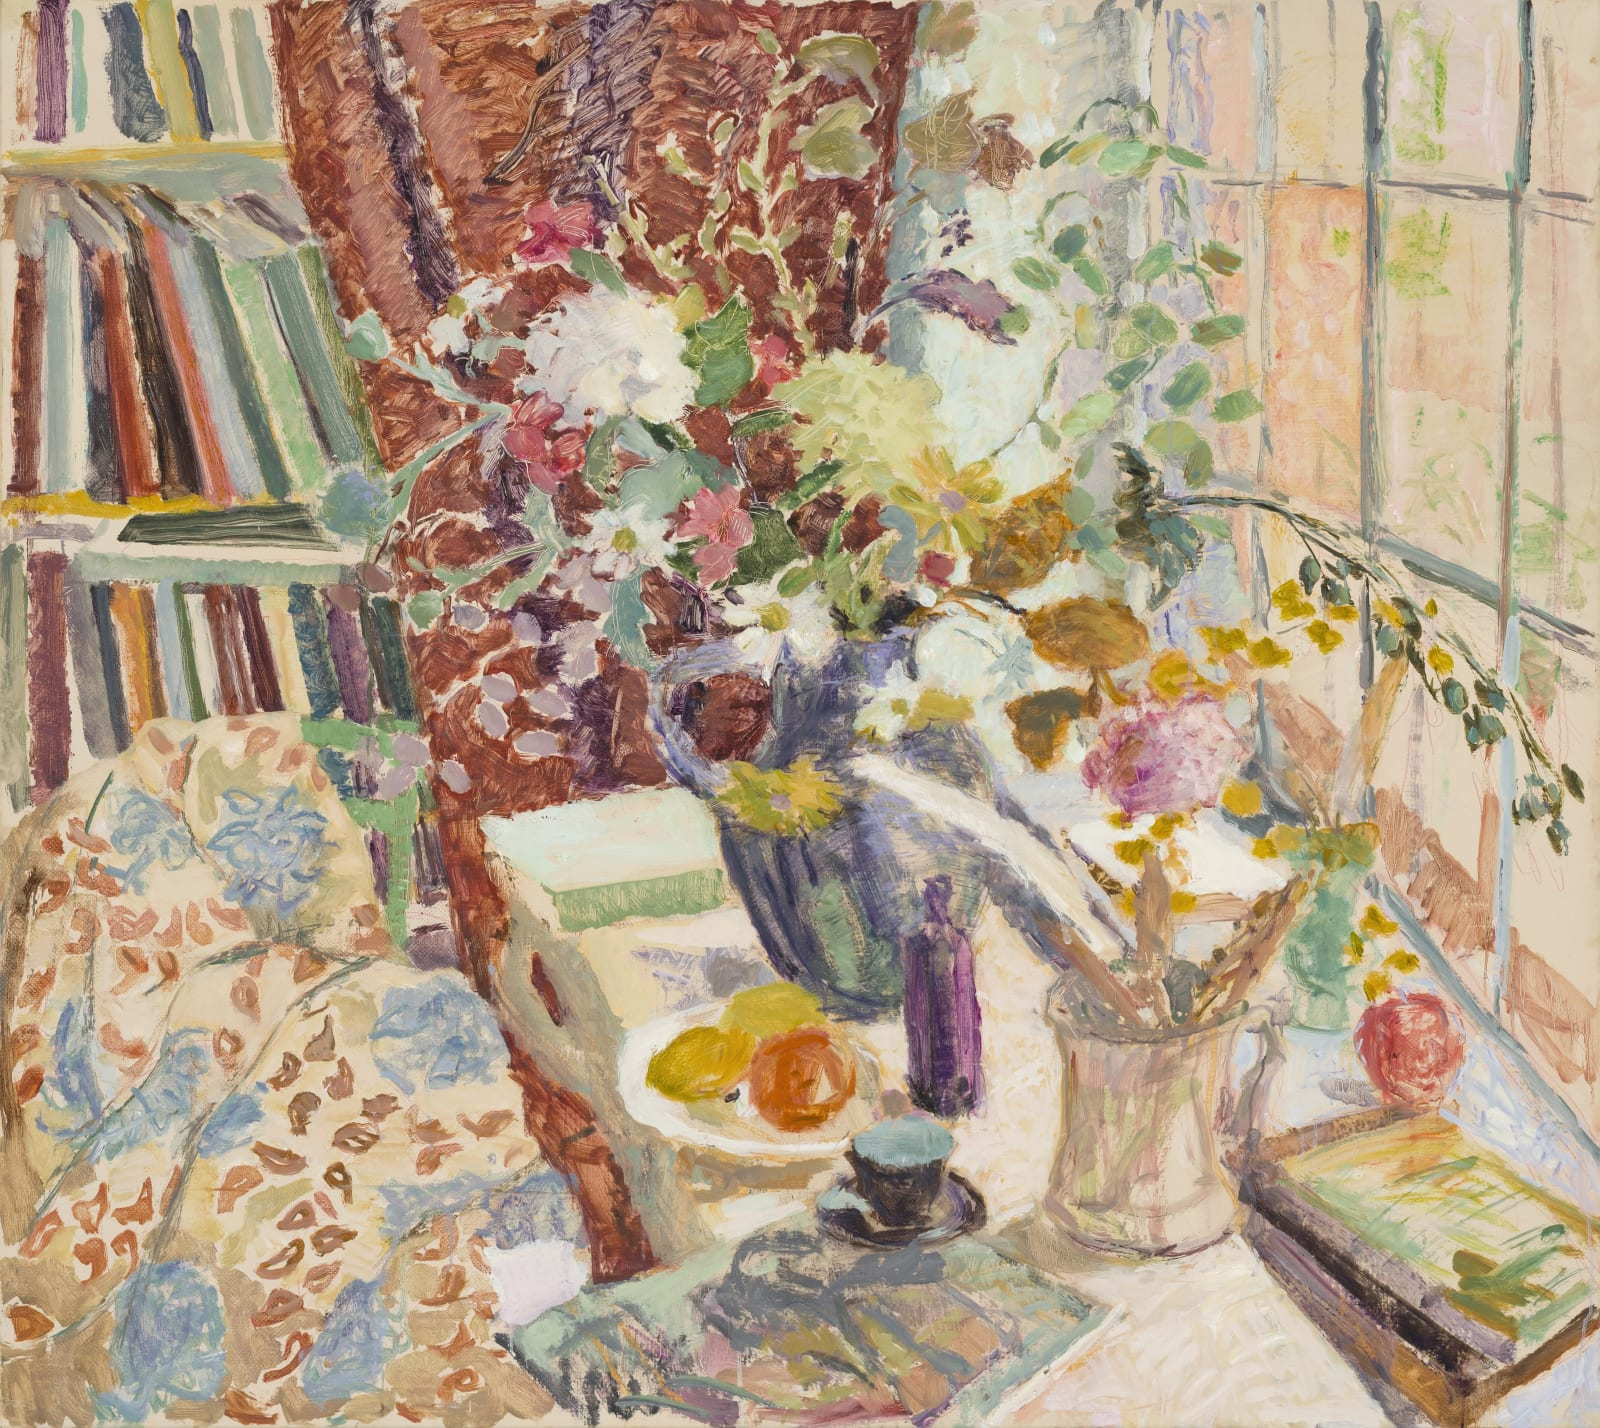 Hugo Grenville The Big Window, Autumn Signed Oil on canvas 48 x 54 in 121.9 x 137.2 cms